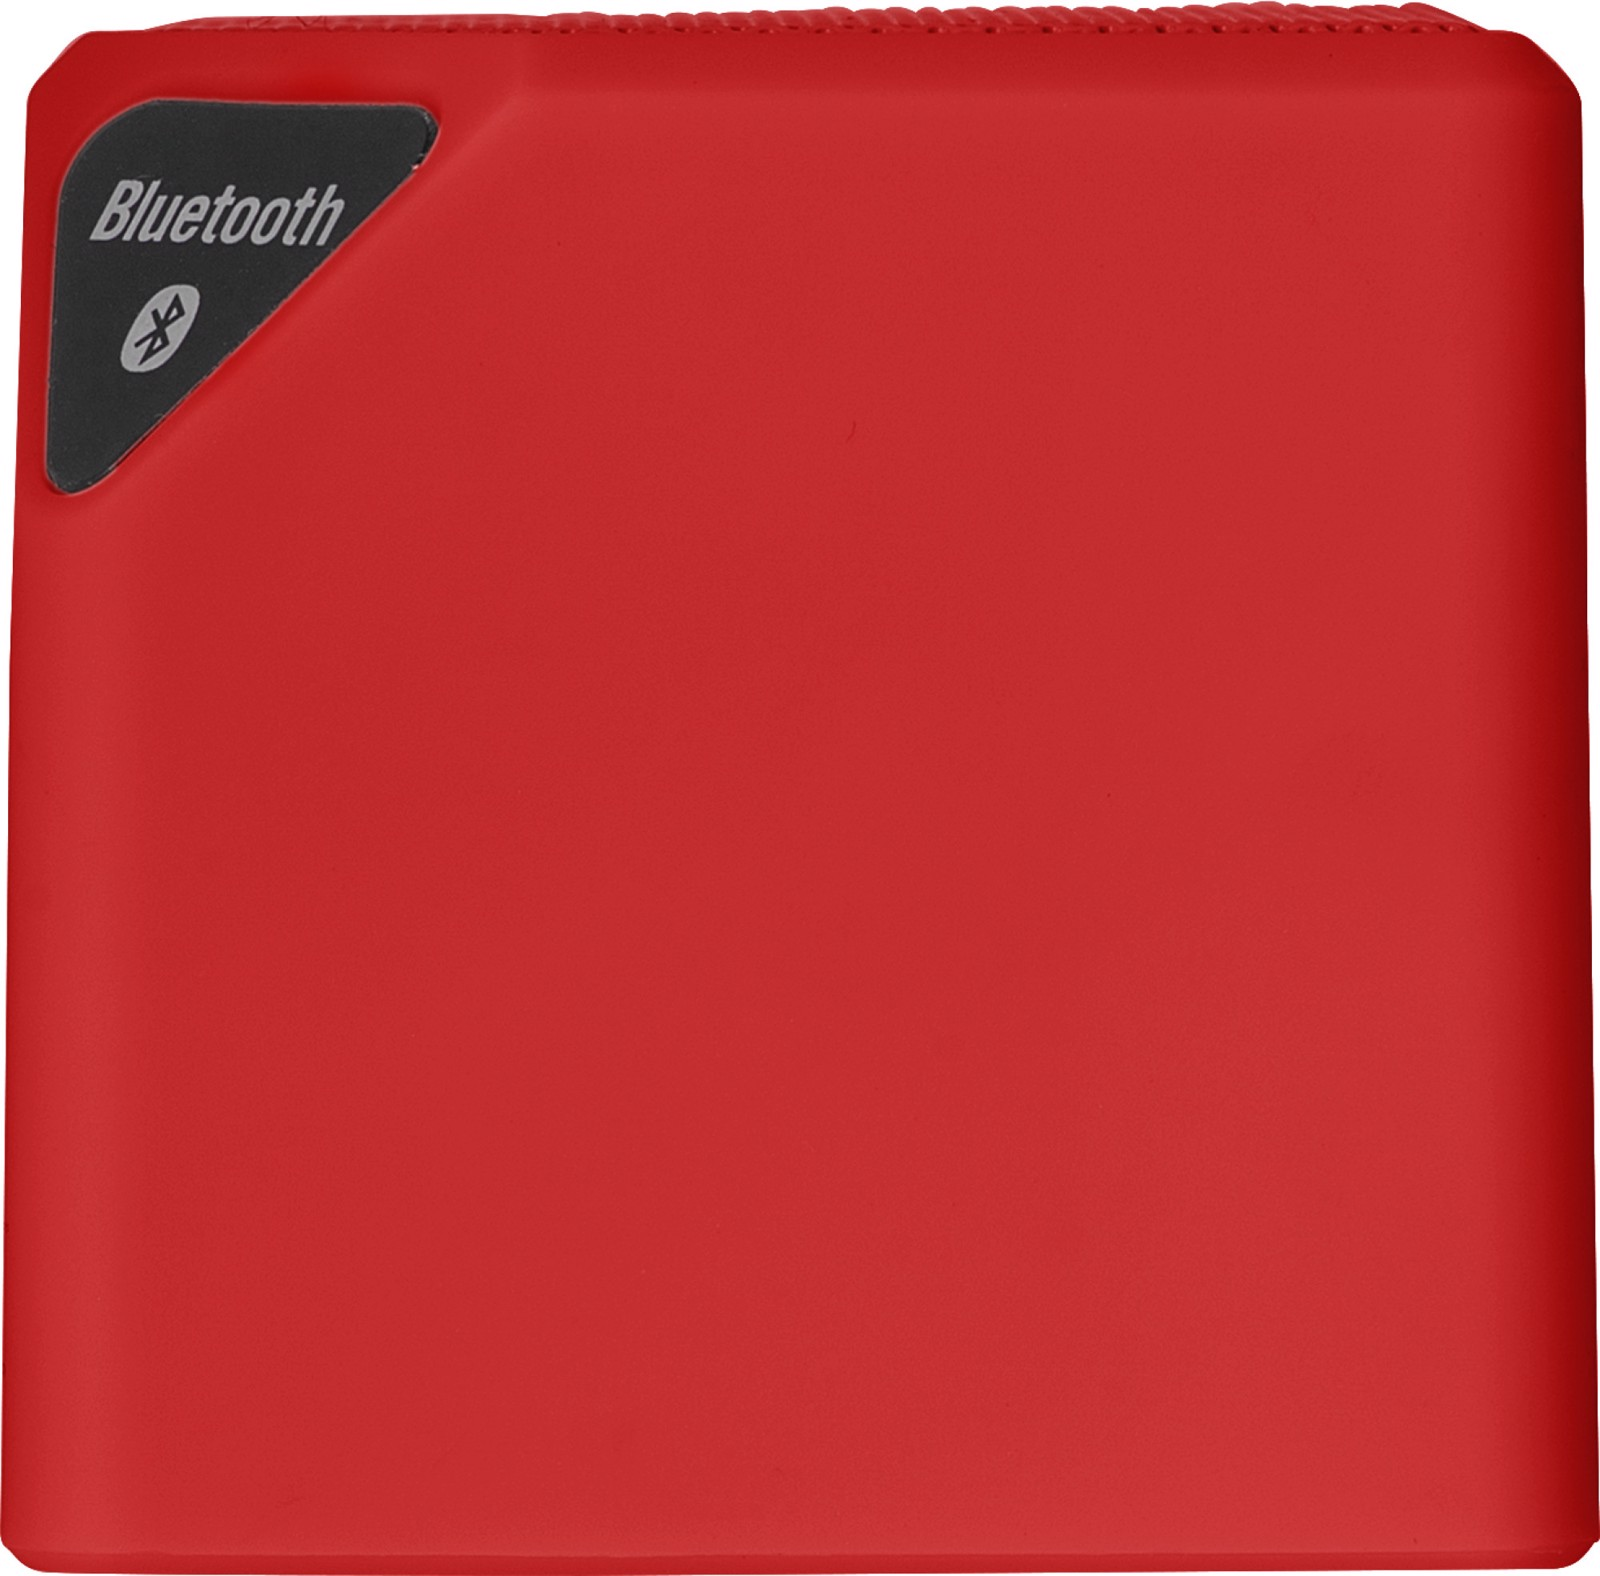 Plastic speaker featuring wireless technology - Red